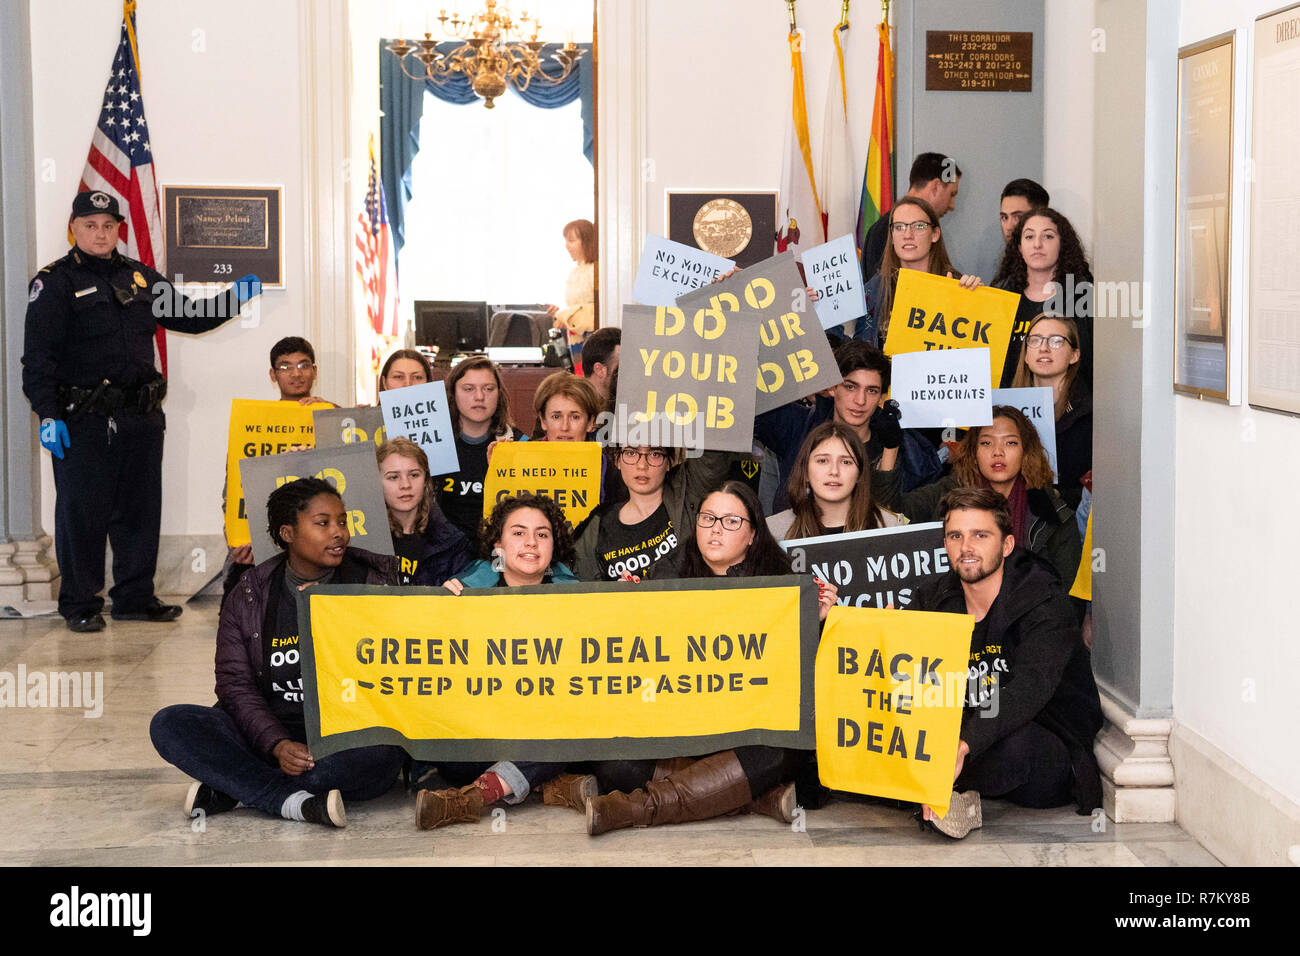 Washington, DC, USA. 10th Dec, 2018. Protesters seen holding placards during the Sunrise Movement protest inside the office of US Representative Nancy Pelosi (D-CA) to advocate that Democrats support the Green New Deal, at the US Capitol in Washington, DC. Credit: Michael Brochstein/SOPA Images/ZUMA Wire/Alamy Live News Stock Photo